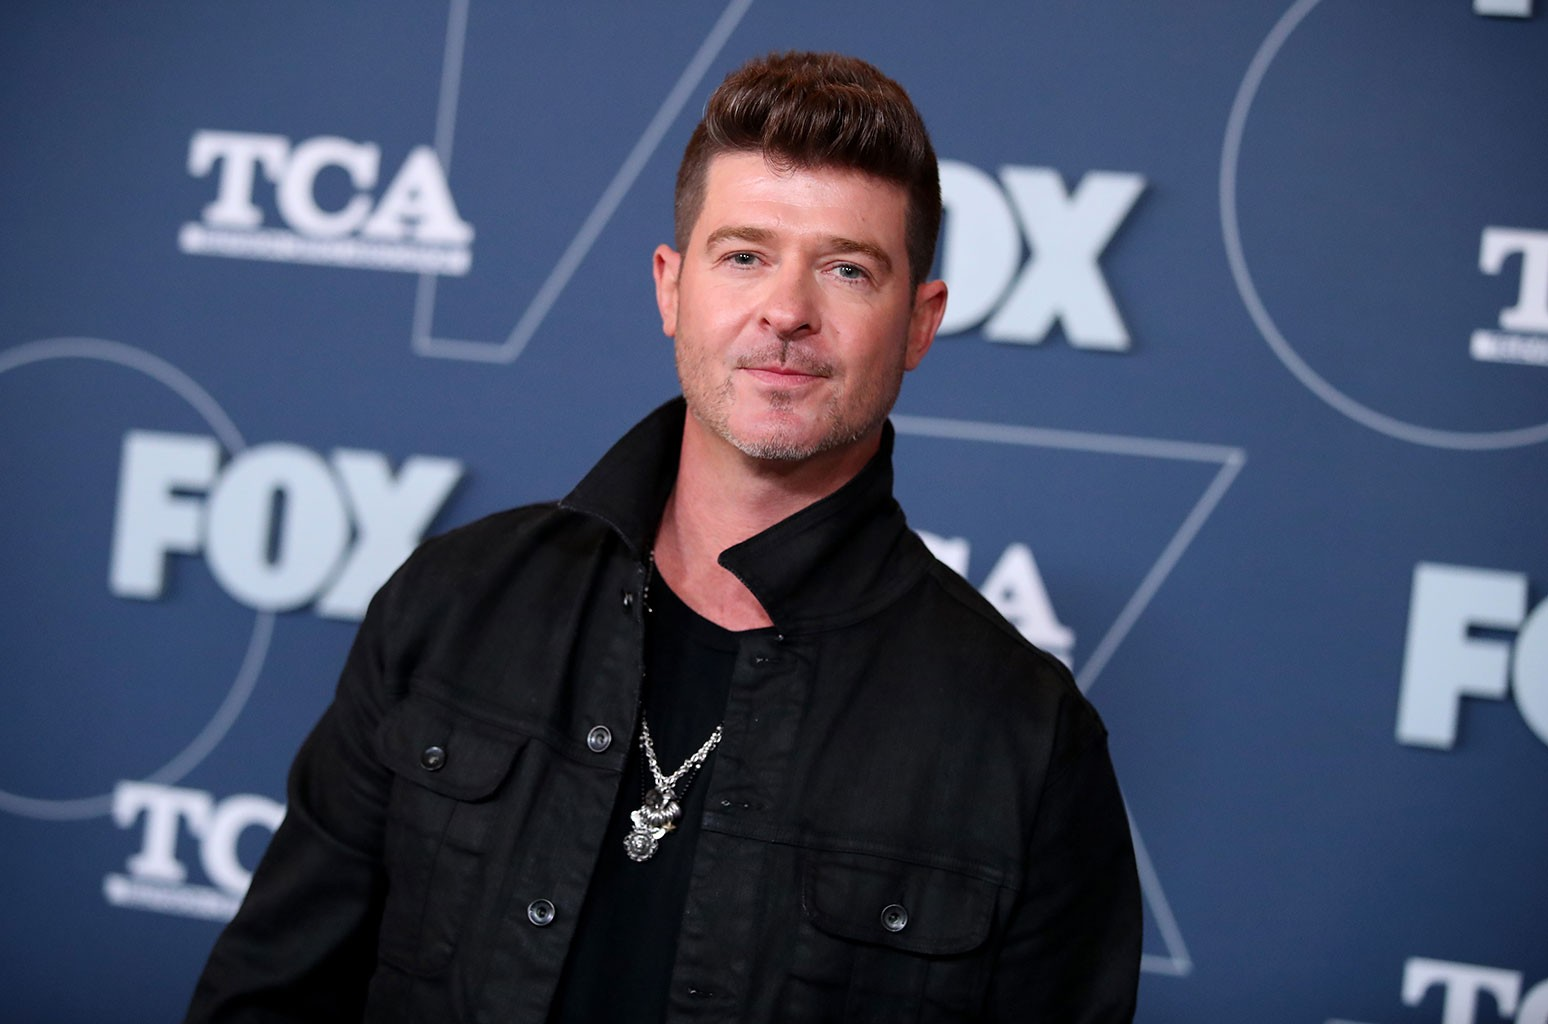 Robin Thicke Talks Growing Out of 'Bad Routines' Following the Success of 'Blurred Lines' & What the Song Mean - Billboard